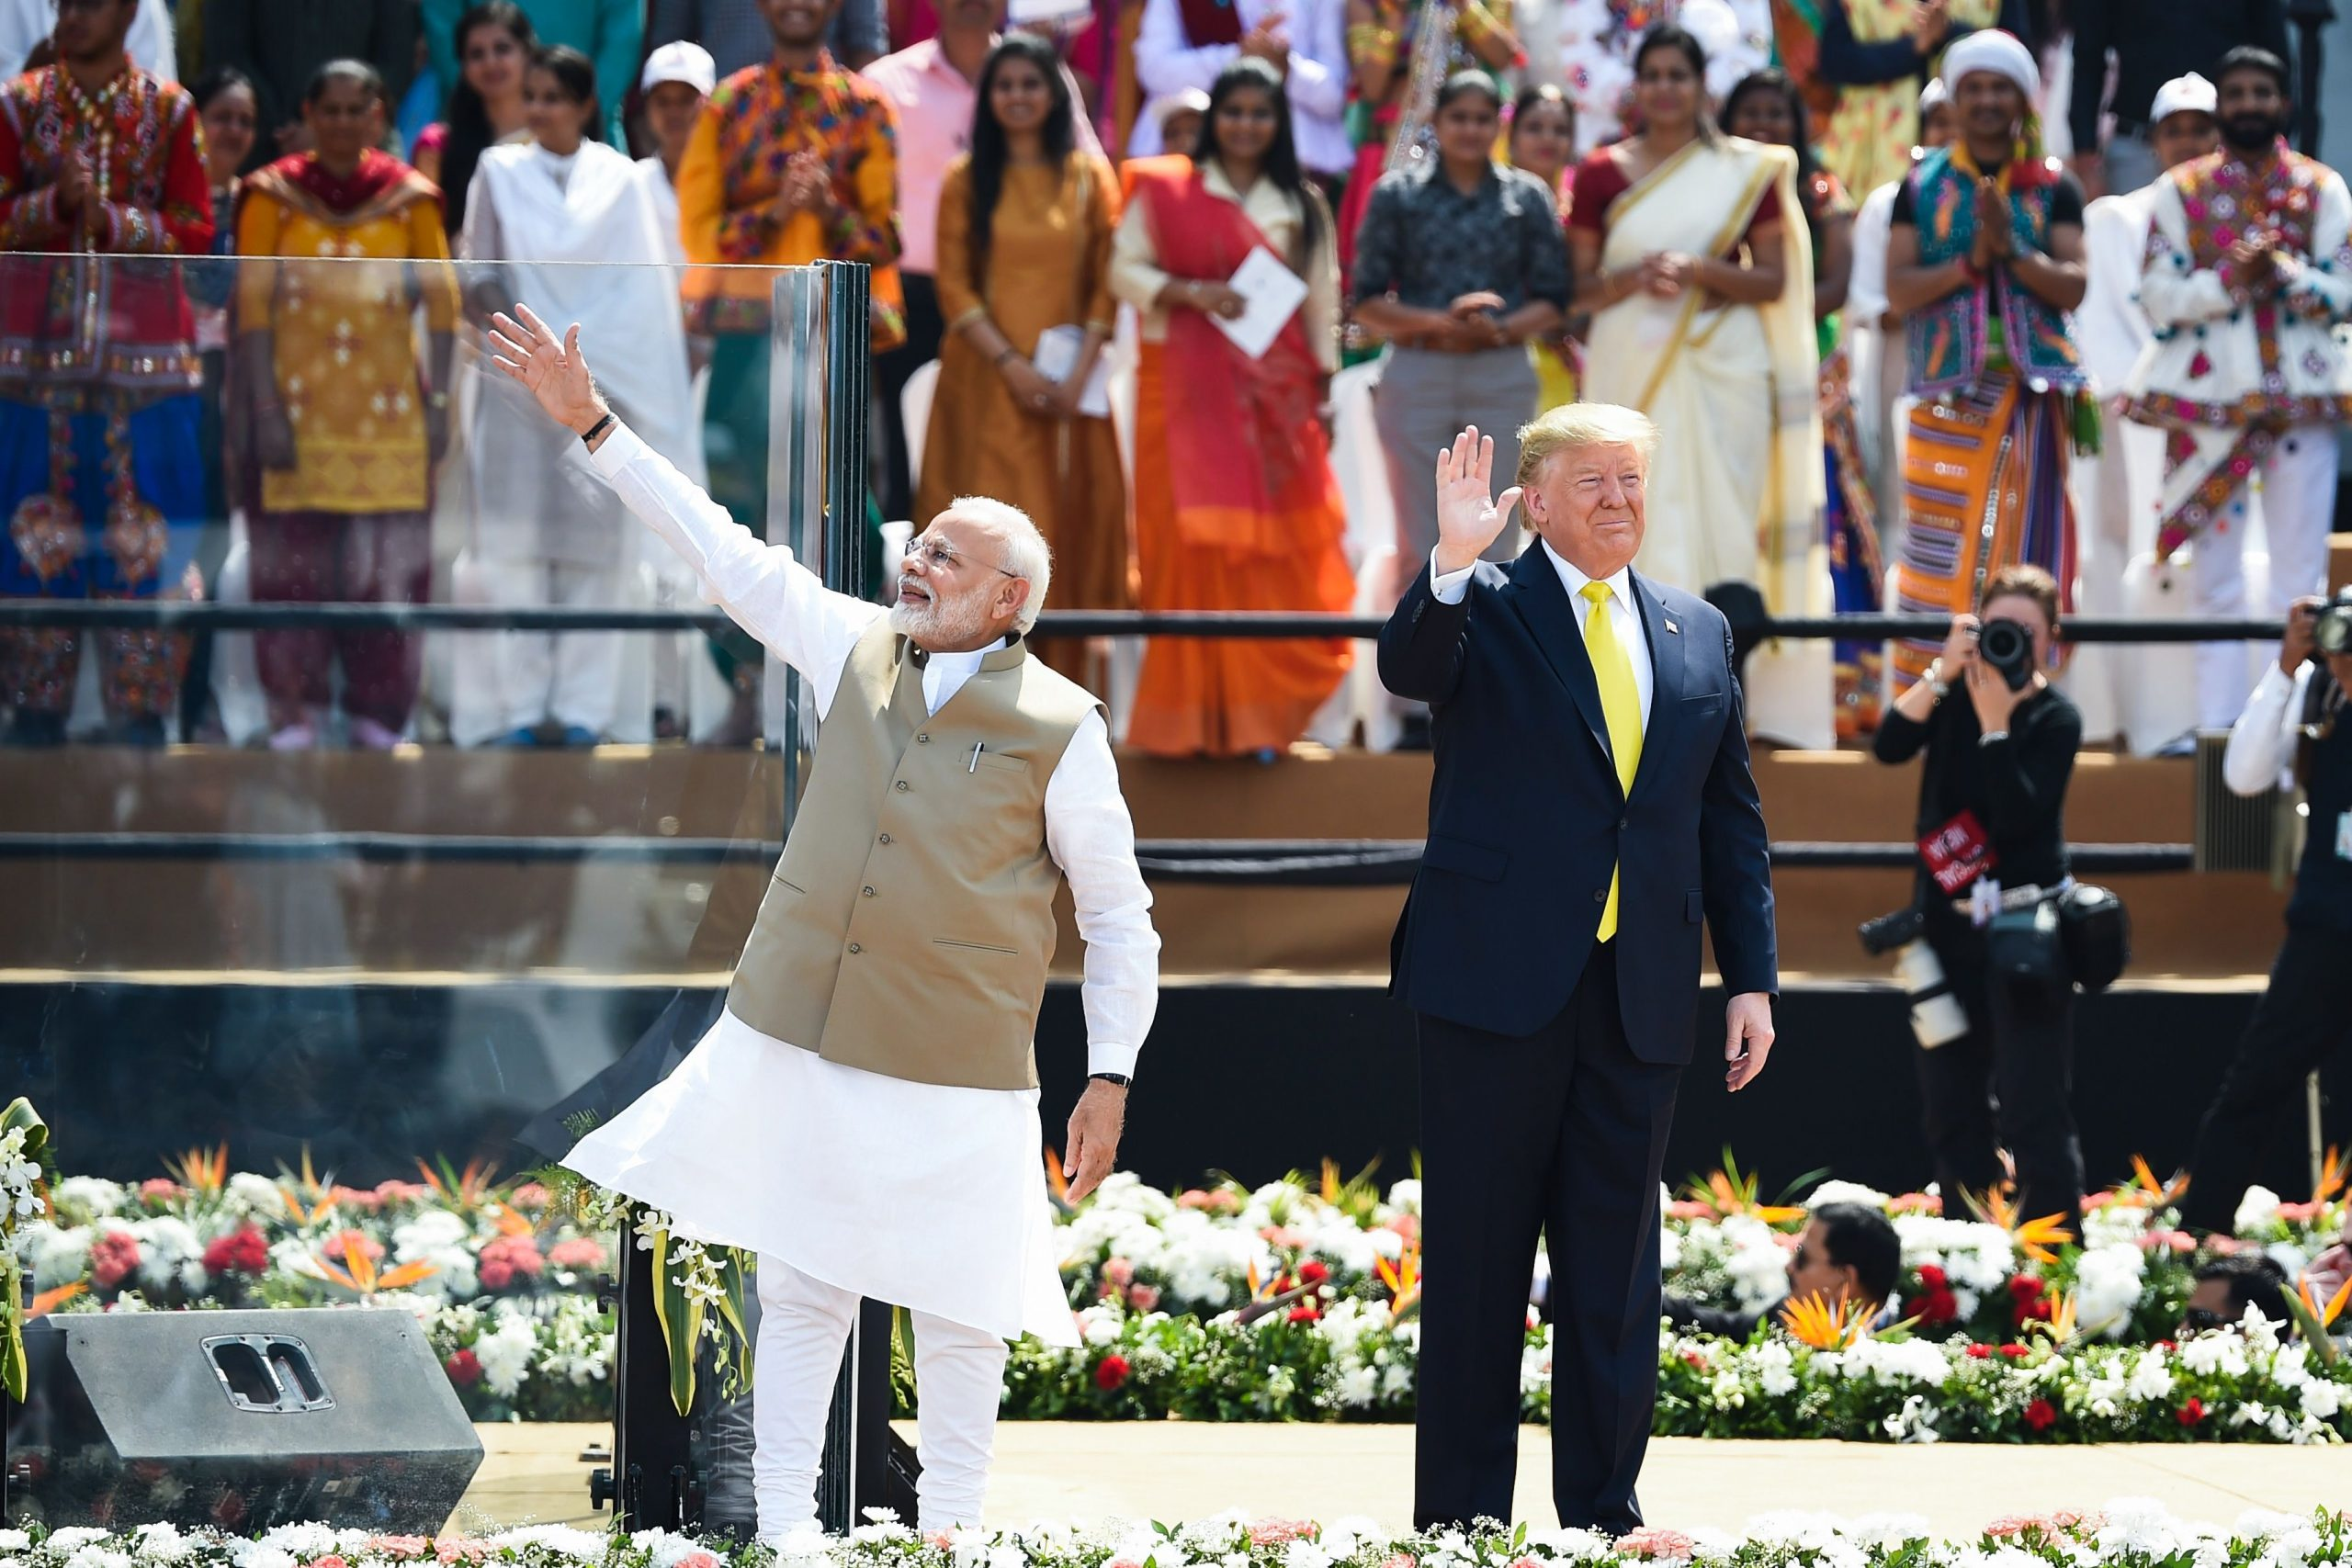 US president Donald Trump (R) and India's prime minister Narendra Modi wave at the crowd during 'Namaste Trump' rally at Sardar Patel Stadium in Motera, on the outskirts of Ahmedabad, on February 24, 2020. (Photo by Money SHARMA / AFP) (Photo by MONEY SHARMA/AFP via Getty Images)